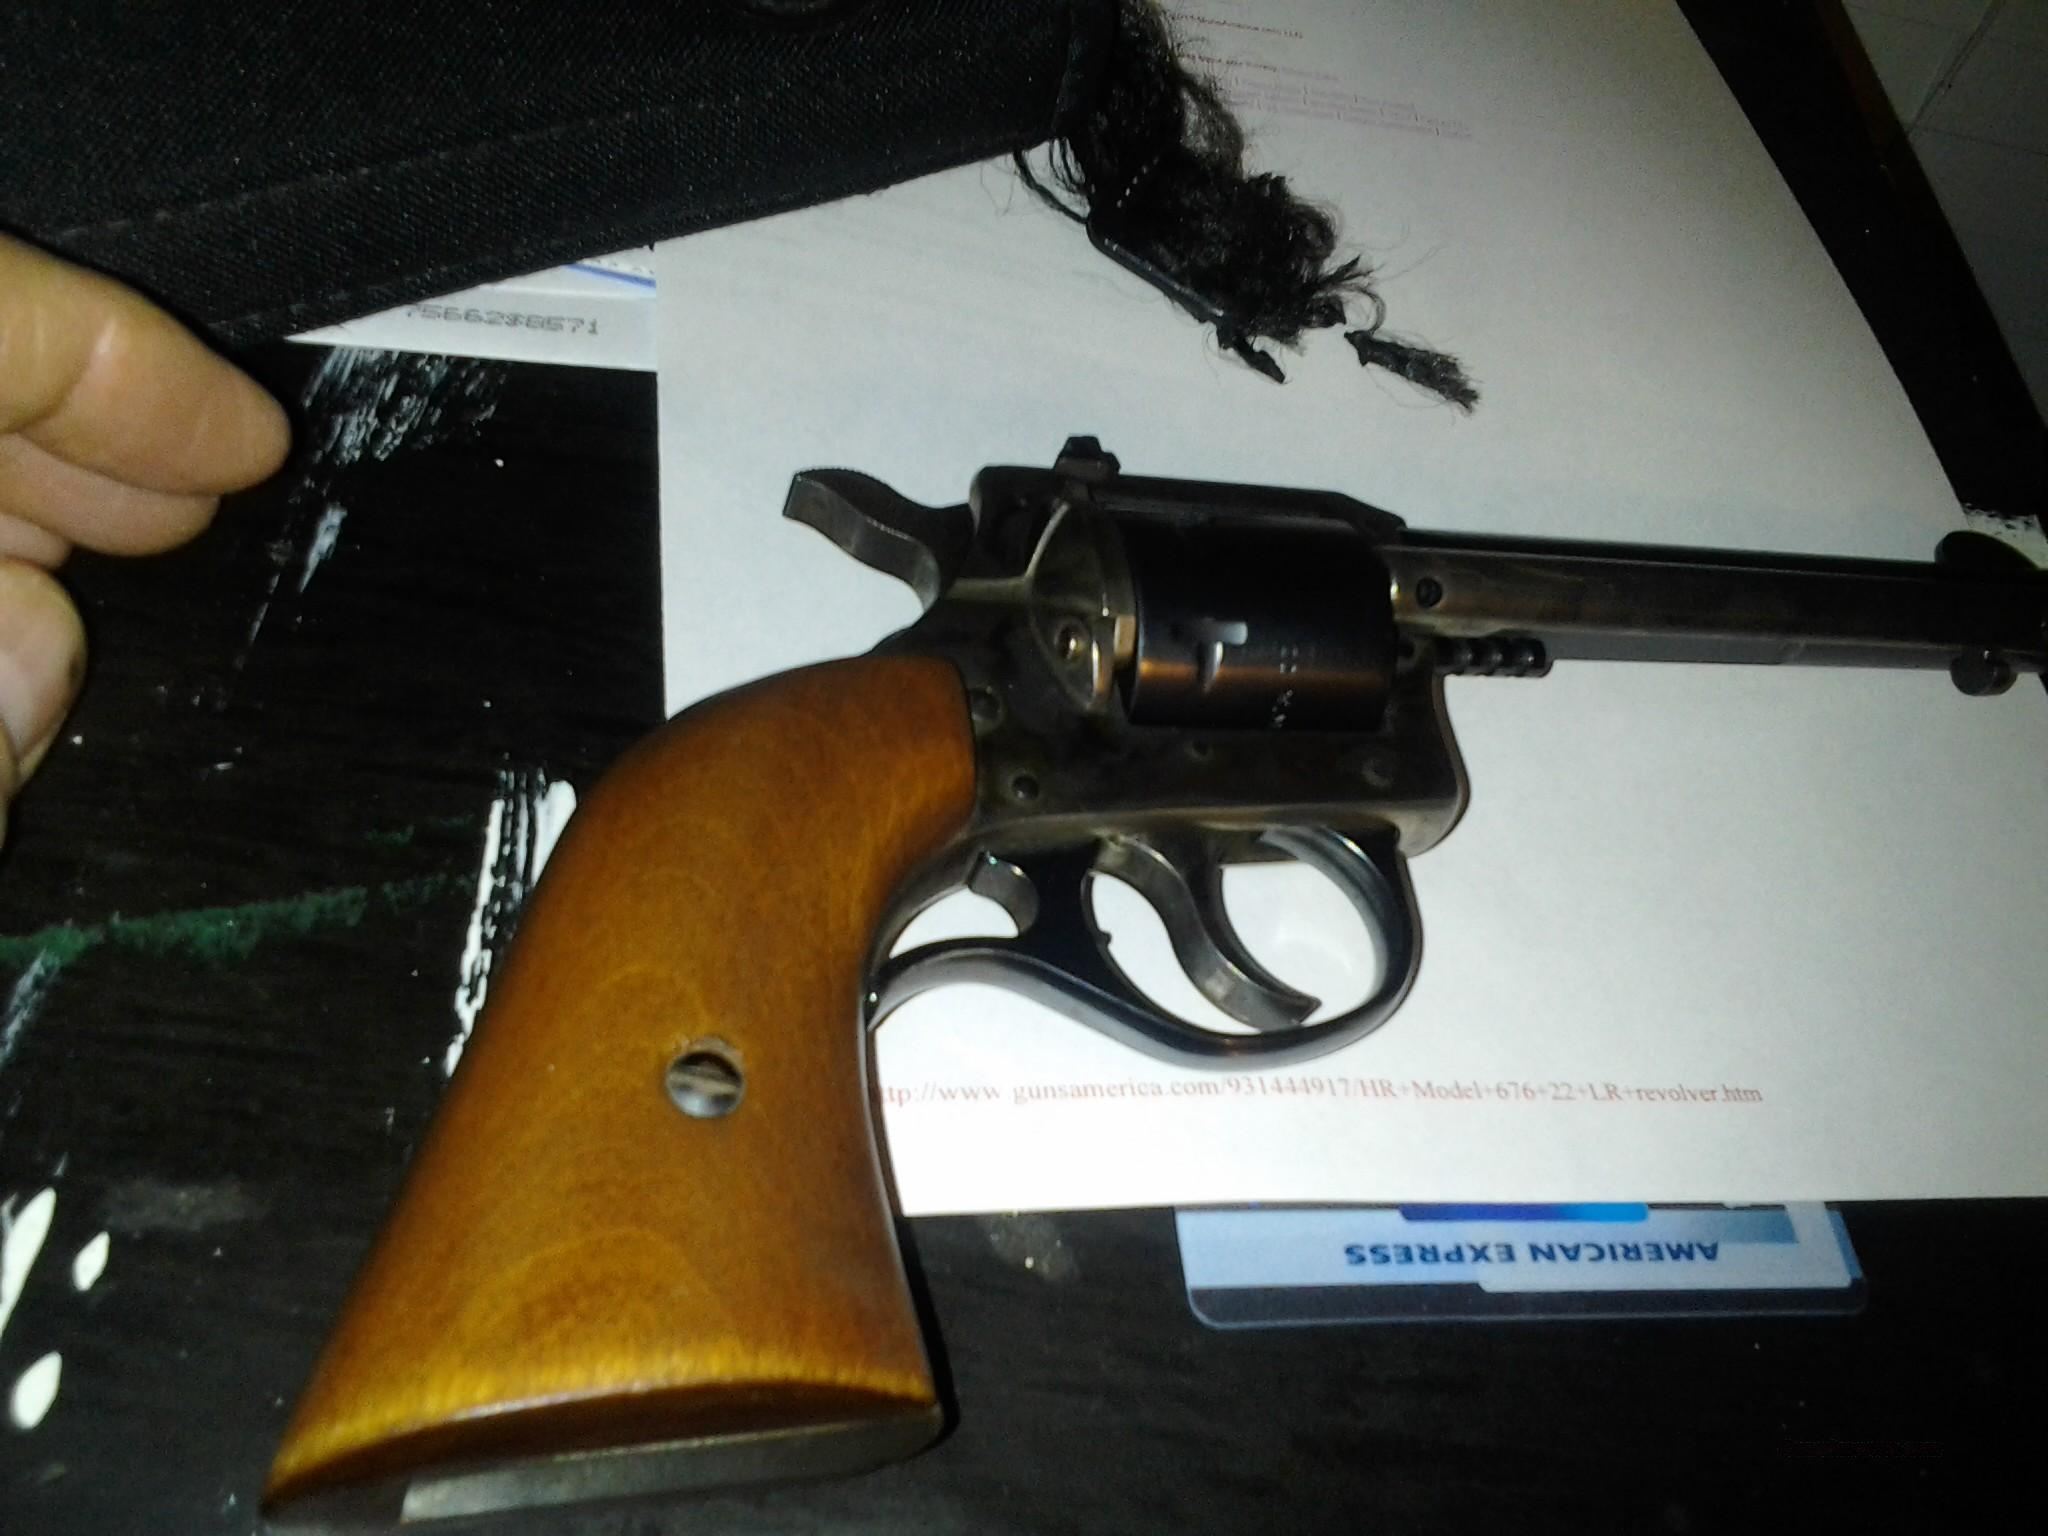 H&R Model 676 Revolver 22 Magnum  Guns > Pistols > Harrington & Richardson Pistols